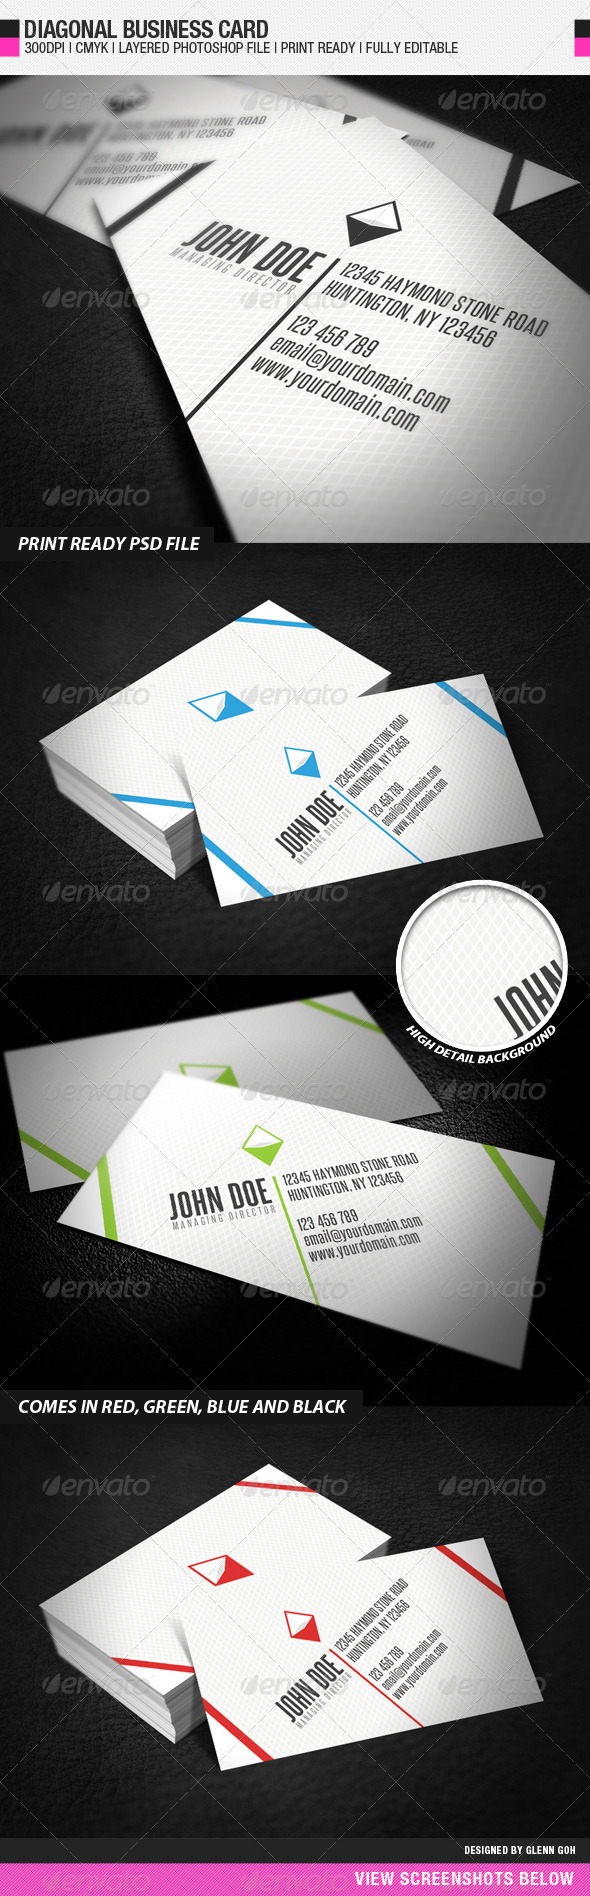 Diagonal Business Card - Creative Business Cards